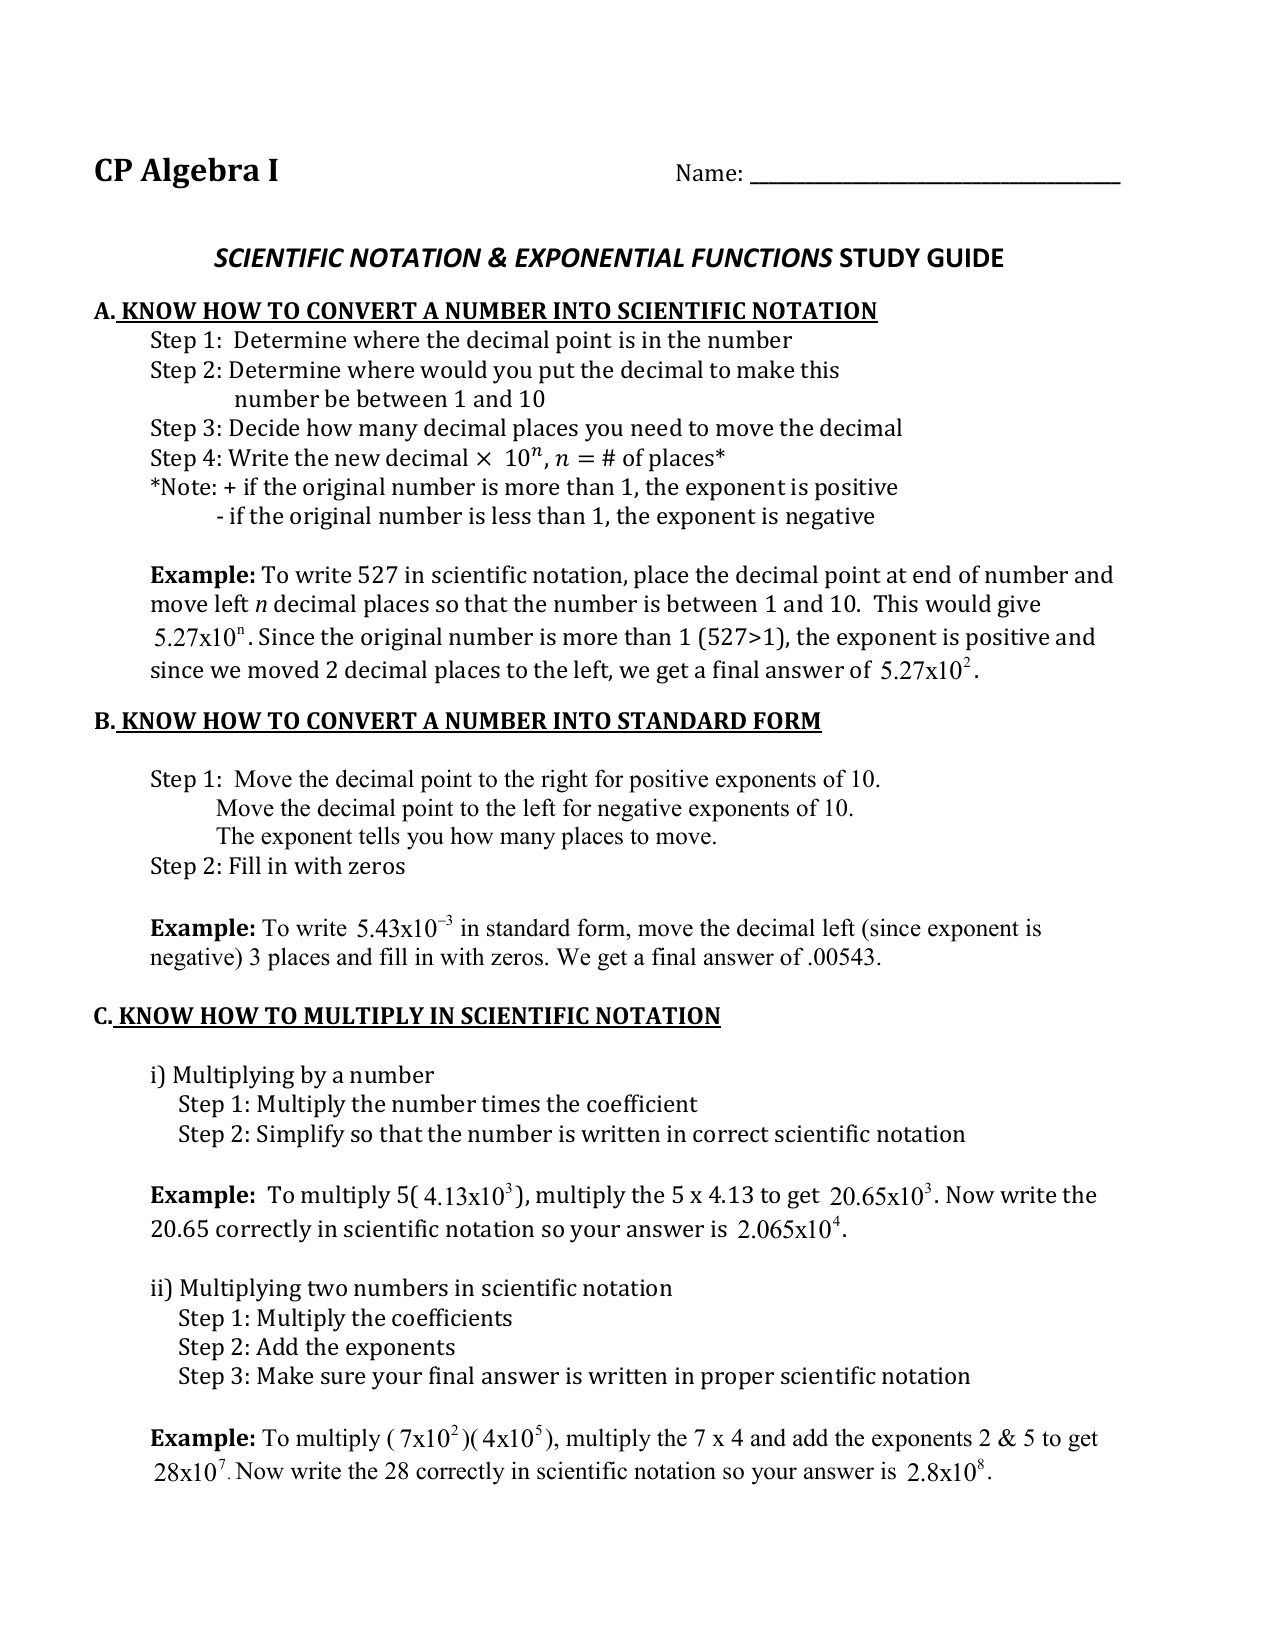 Scientific Notation And 76 Quiz Study Guide